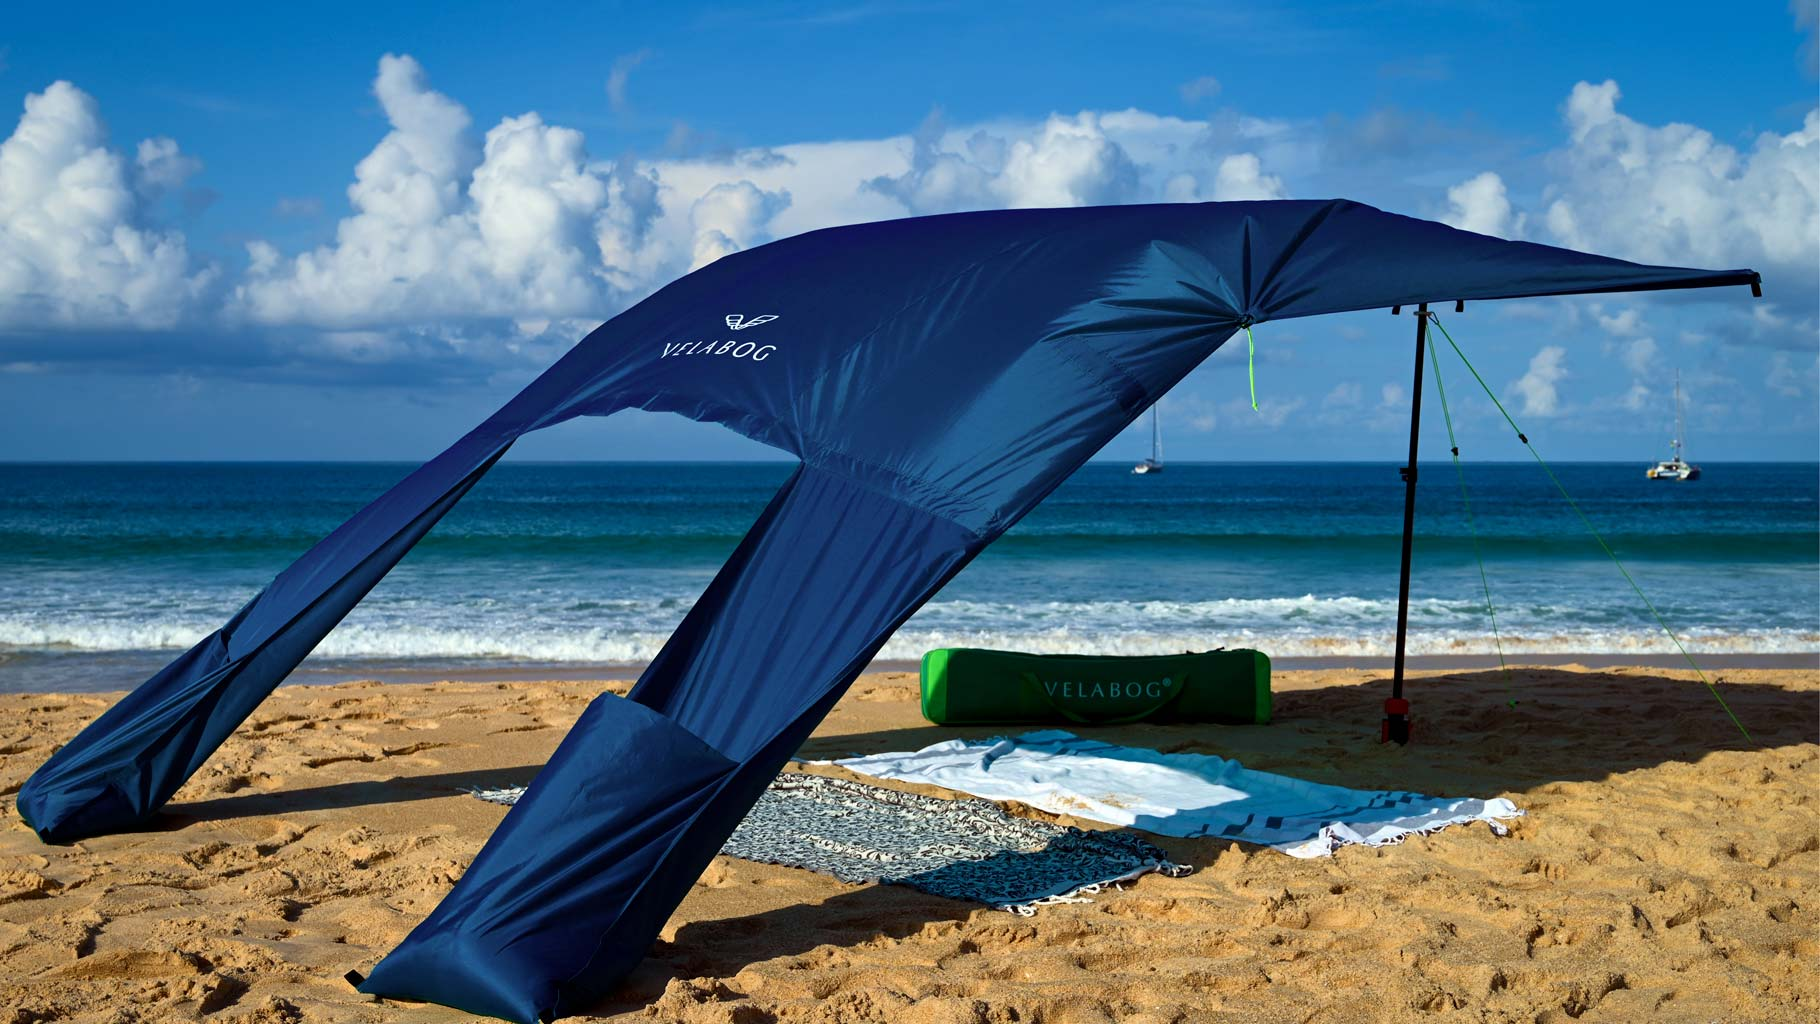 Velabog sun sail «Breeze» nightblue on the windy beach. Sun sail, beach umbrella and beach tent in one. Very large and yet compact. View from behind.